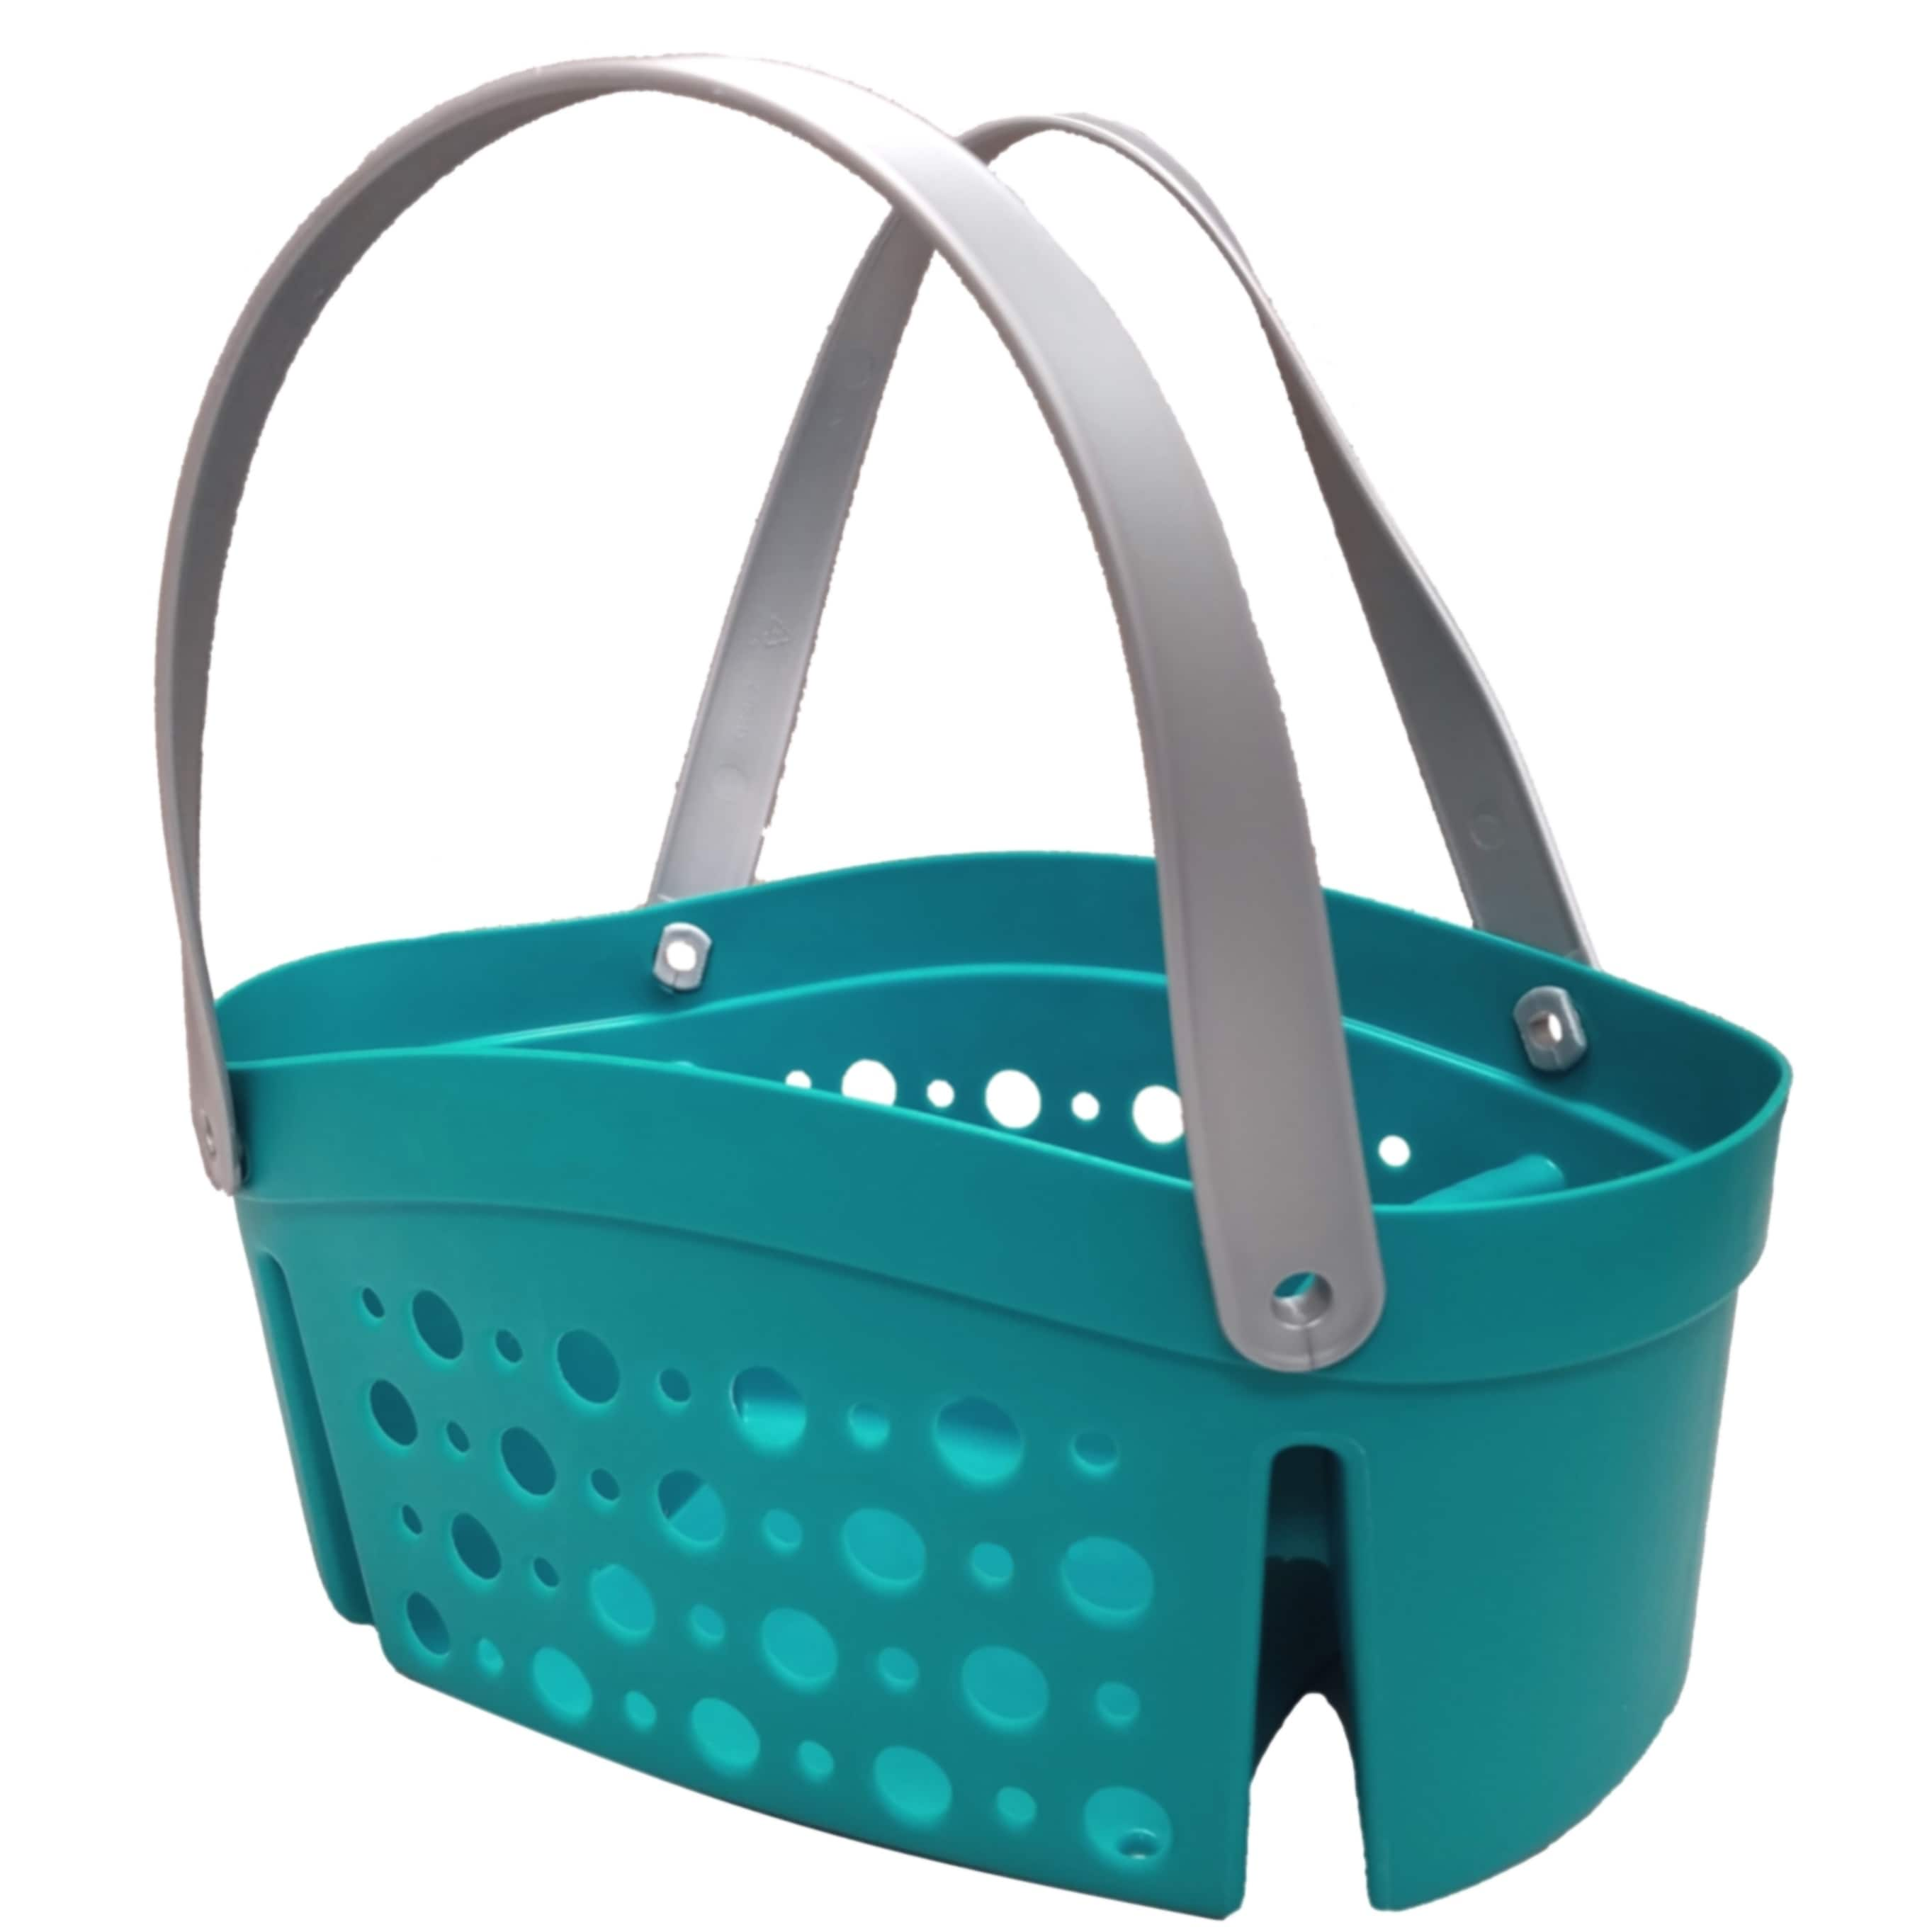 Starplast Flex Shower Caddy / Tote - Teal - Walmart.com